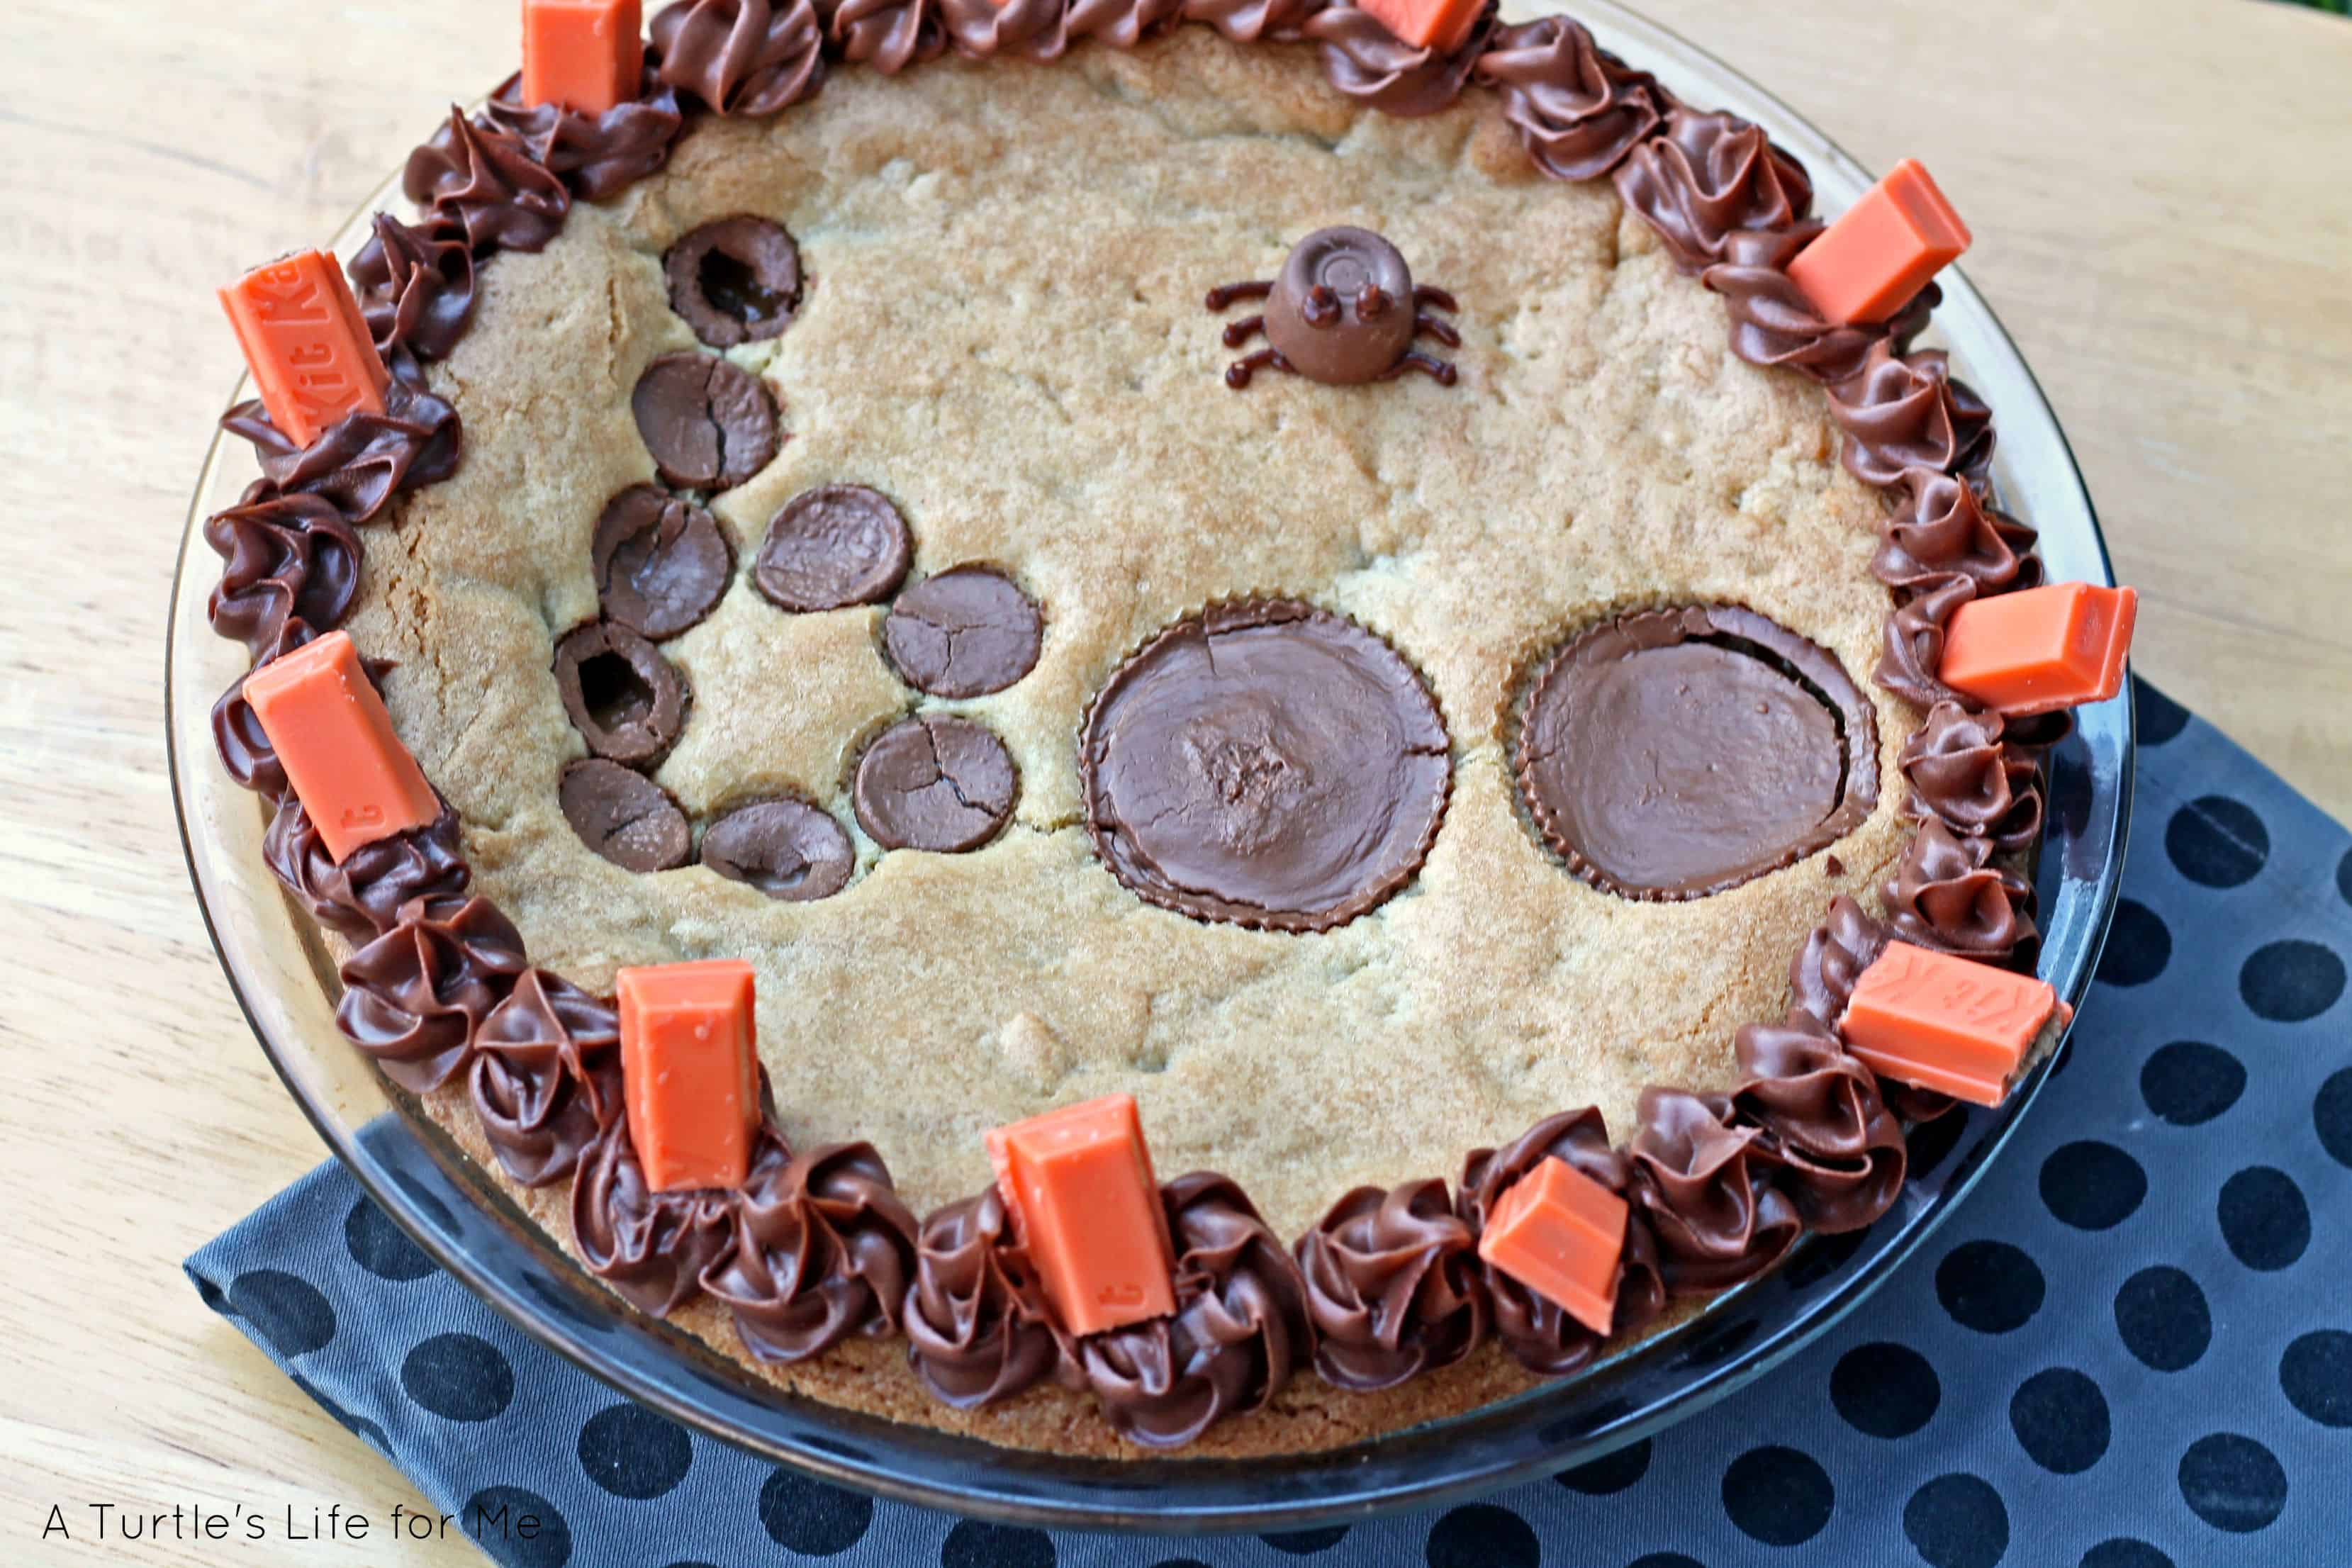 hershey's halloween rolo pie - A Turtle's Life for Me